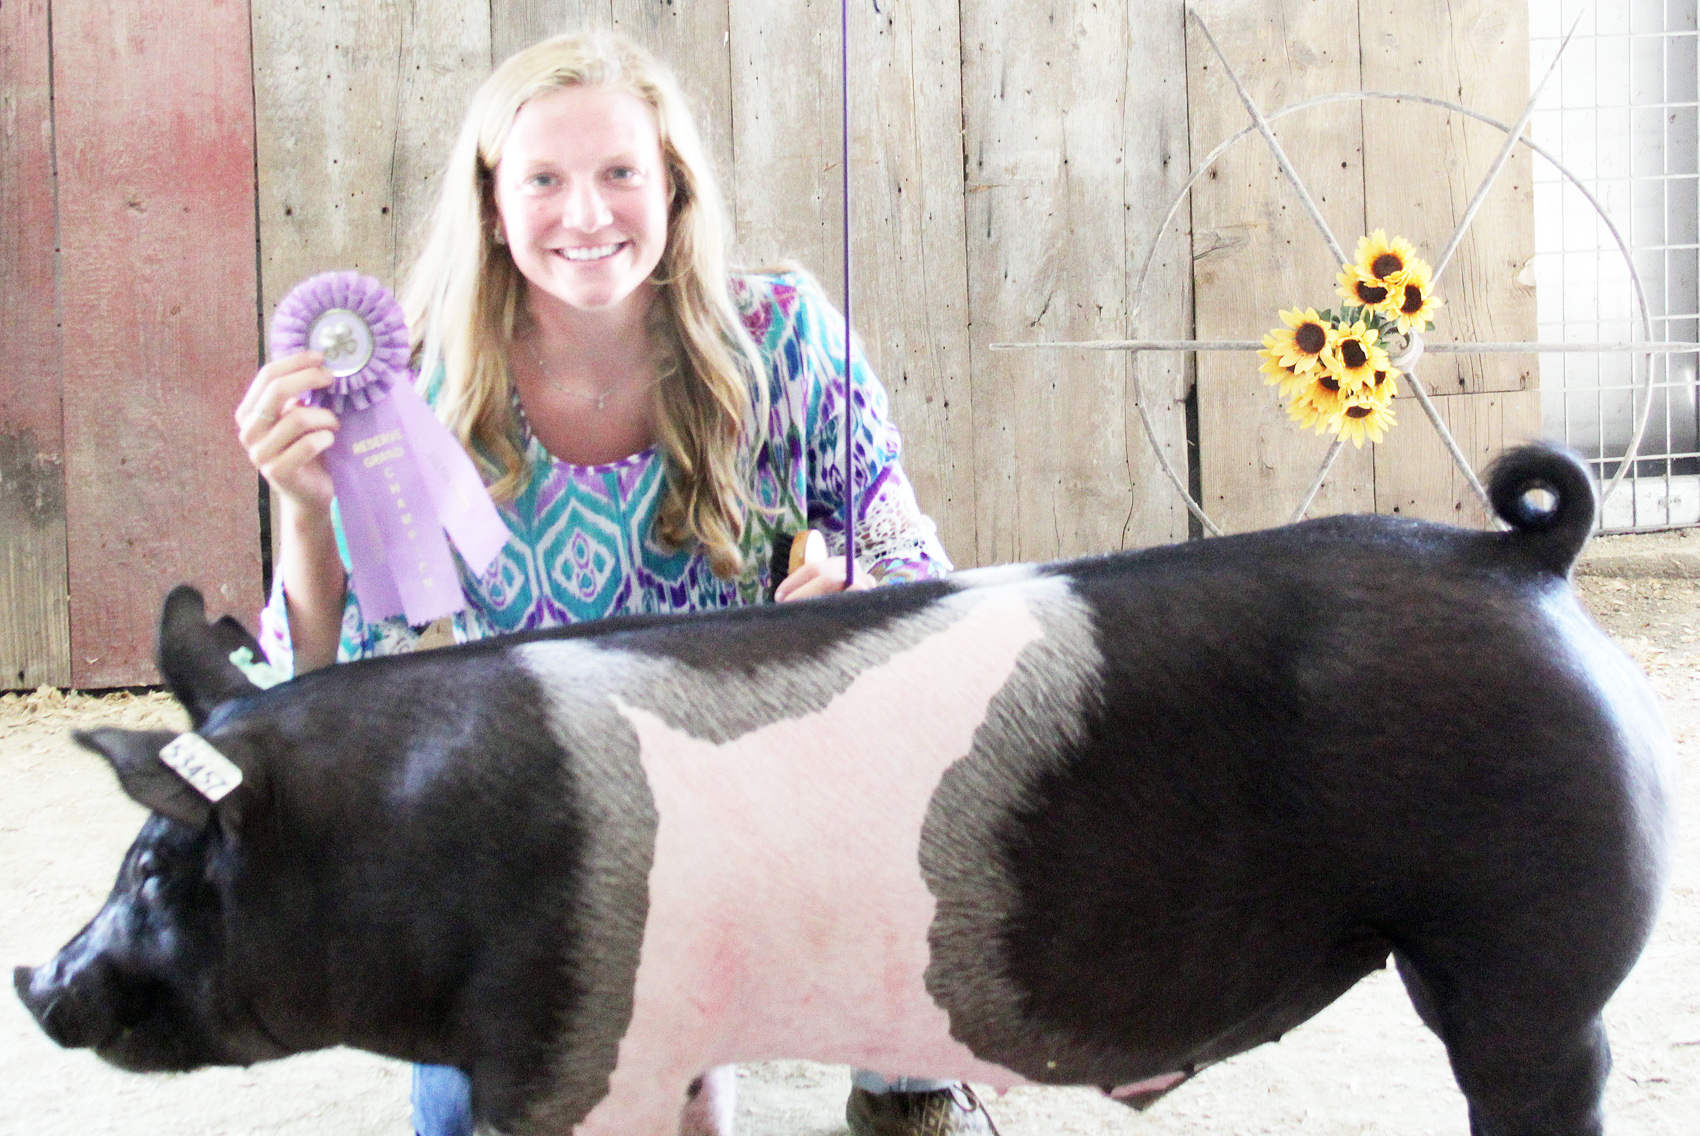 Cailin Parks of the Straight Arrows 4-H Club was named Reserve Champion senior hog showman at the 2020 Jackson County Fair.